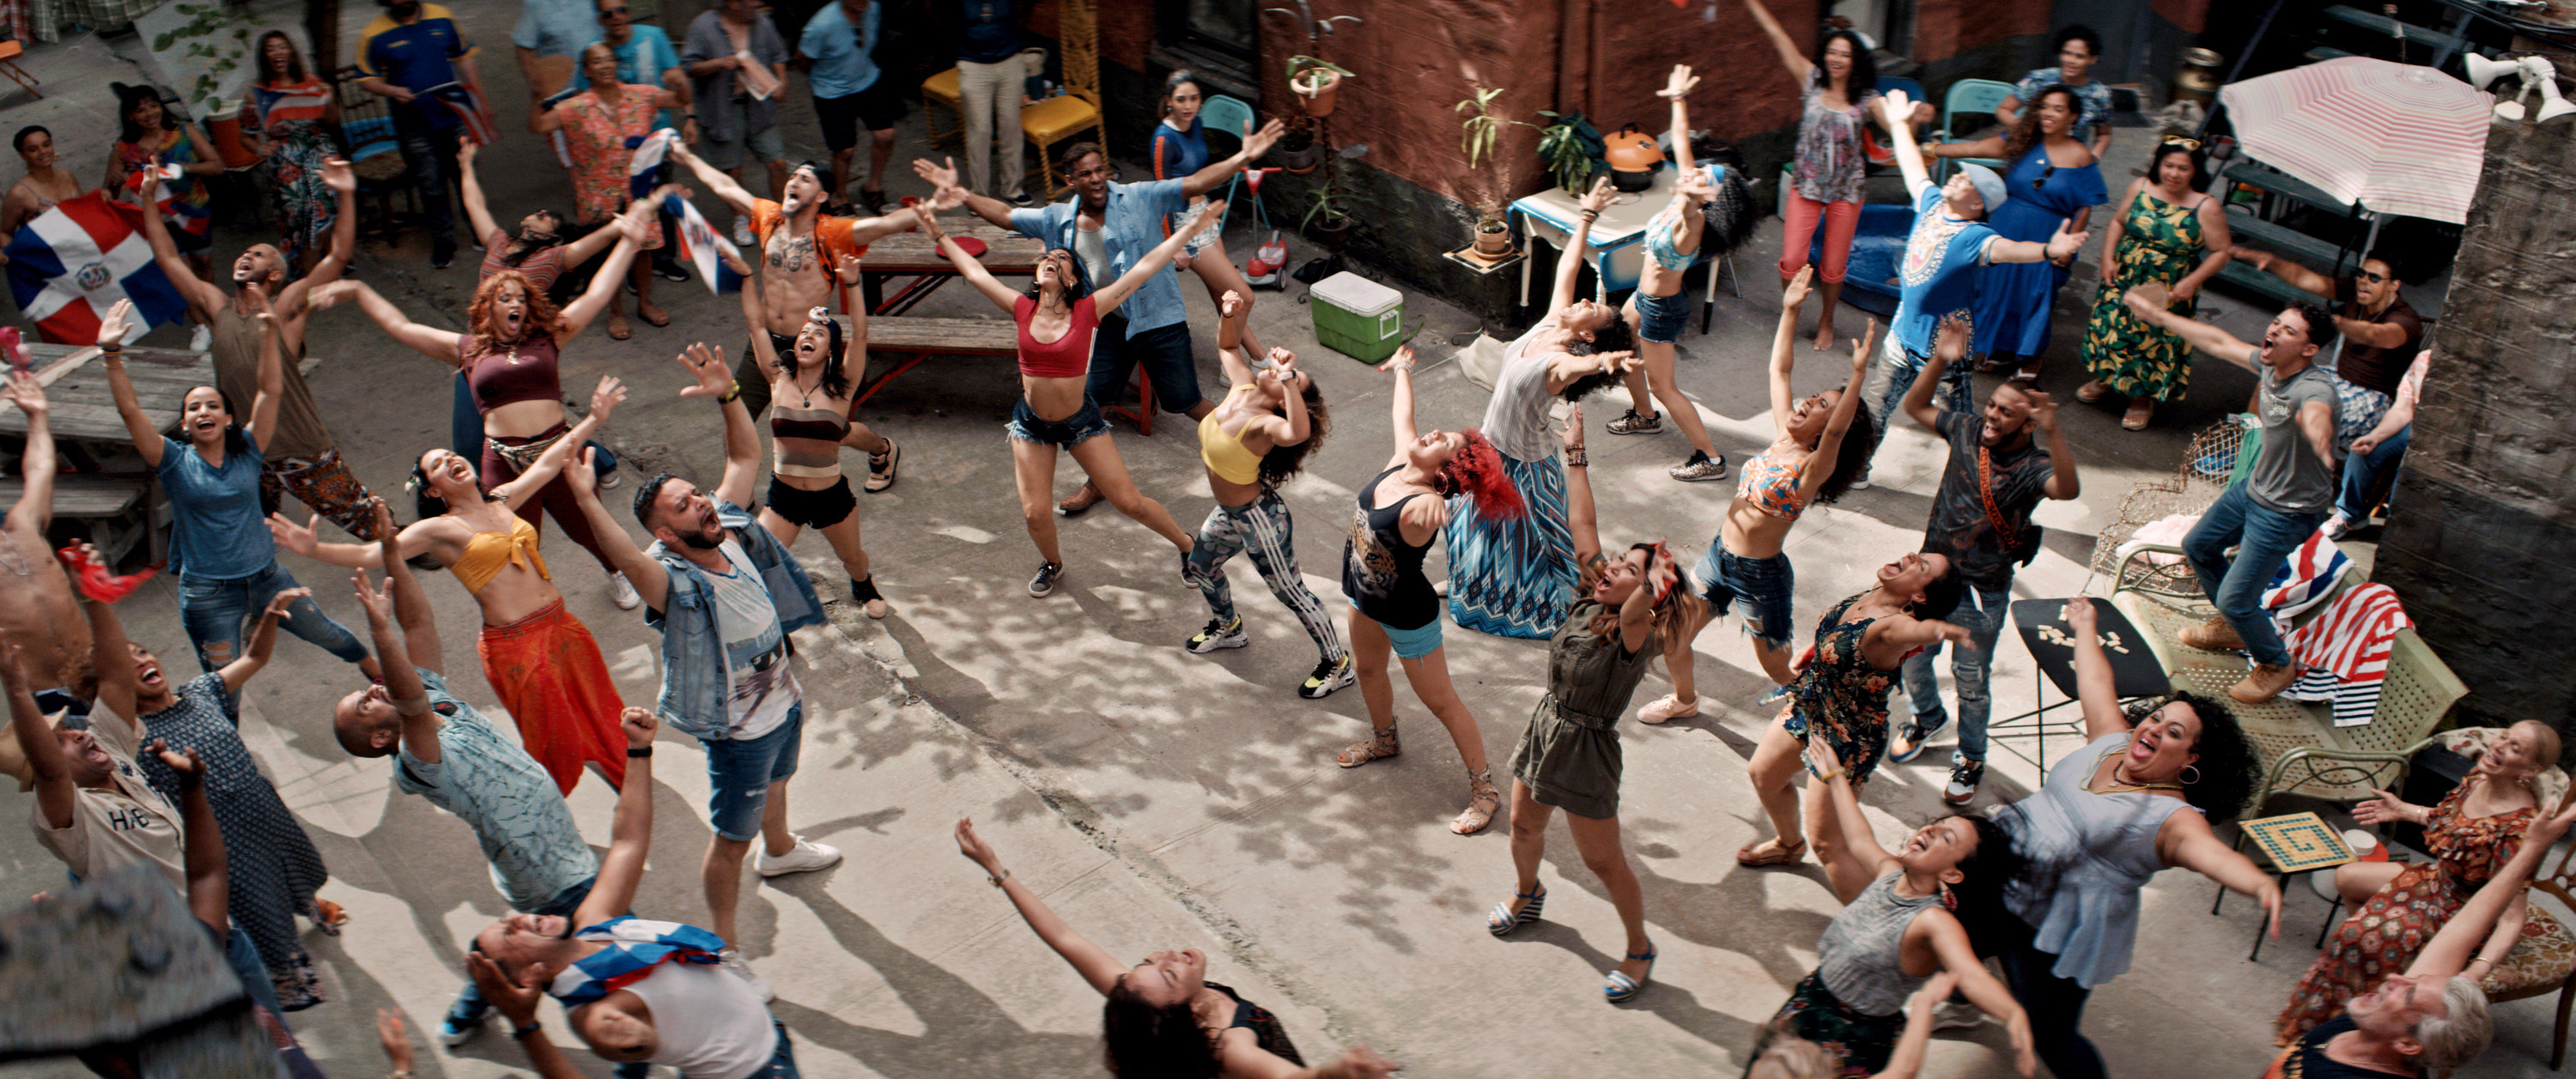 People dancing during Carnaval del Barrio in the film